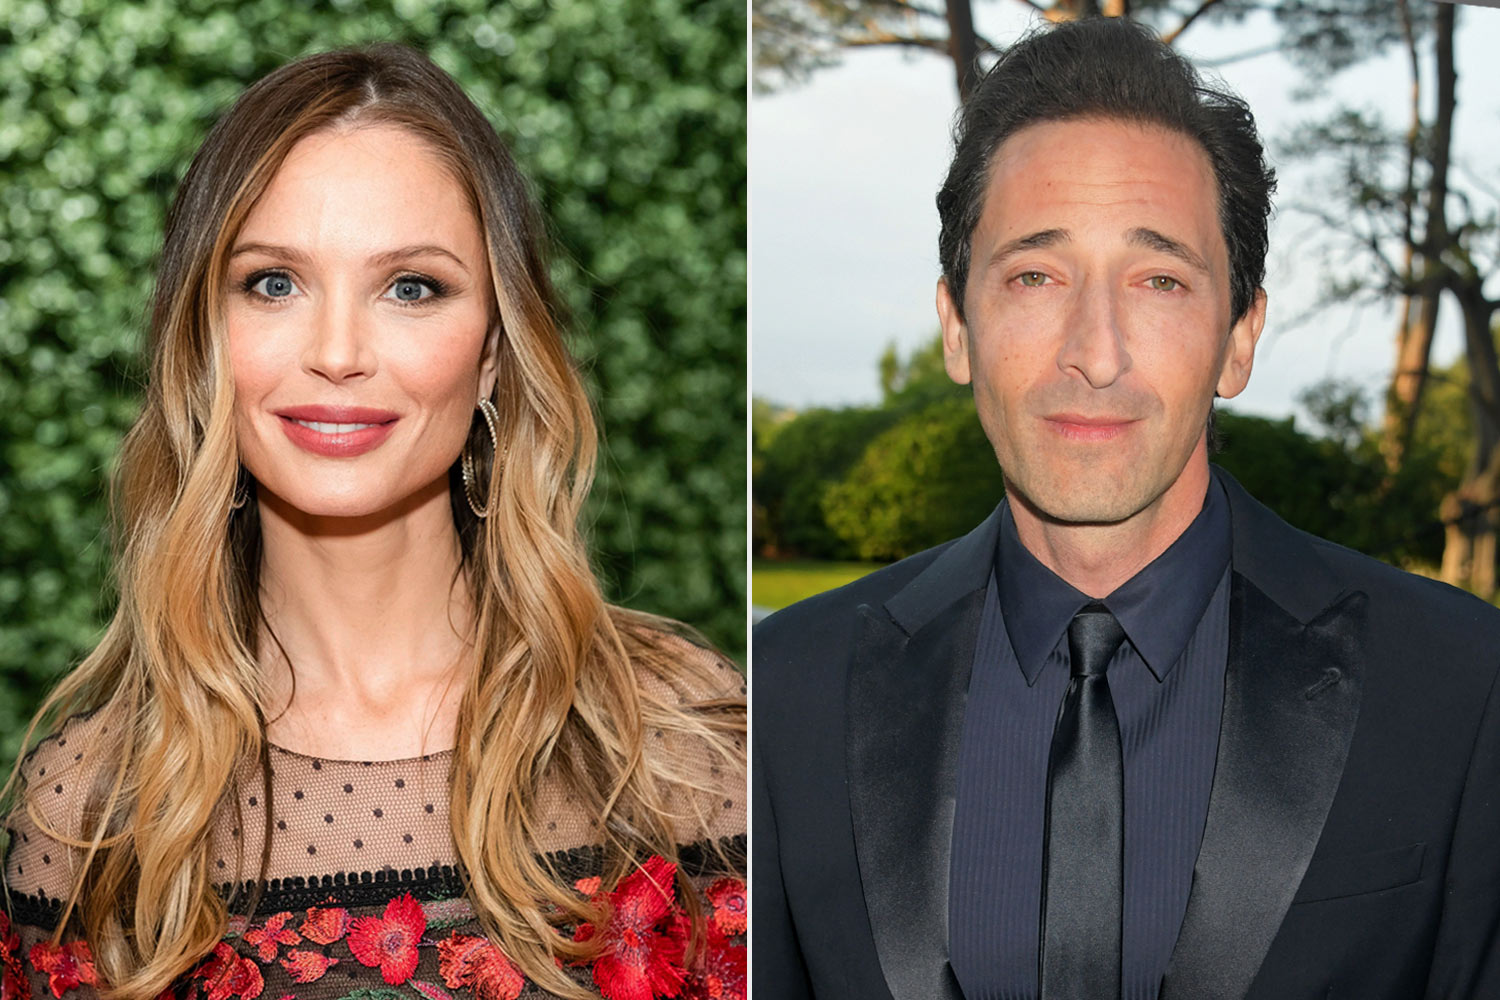 Georgina Chapman and Adrien Brody